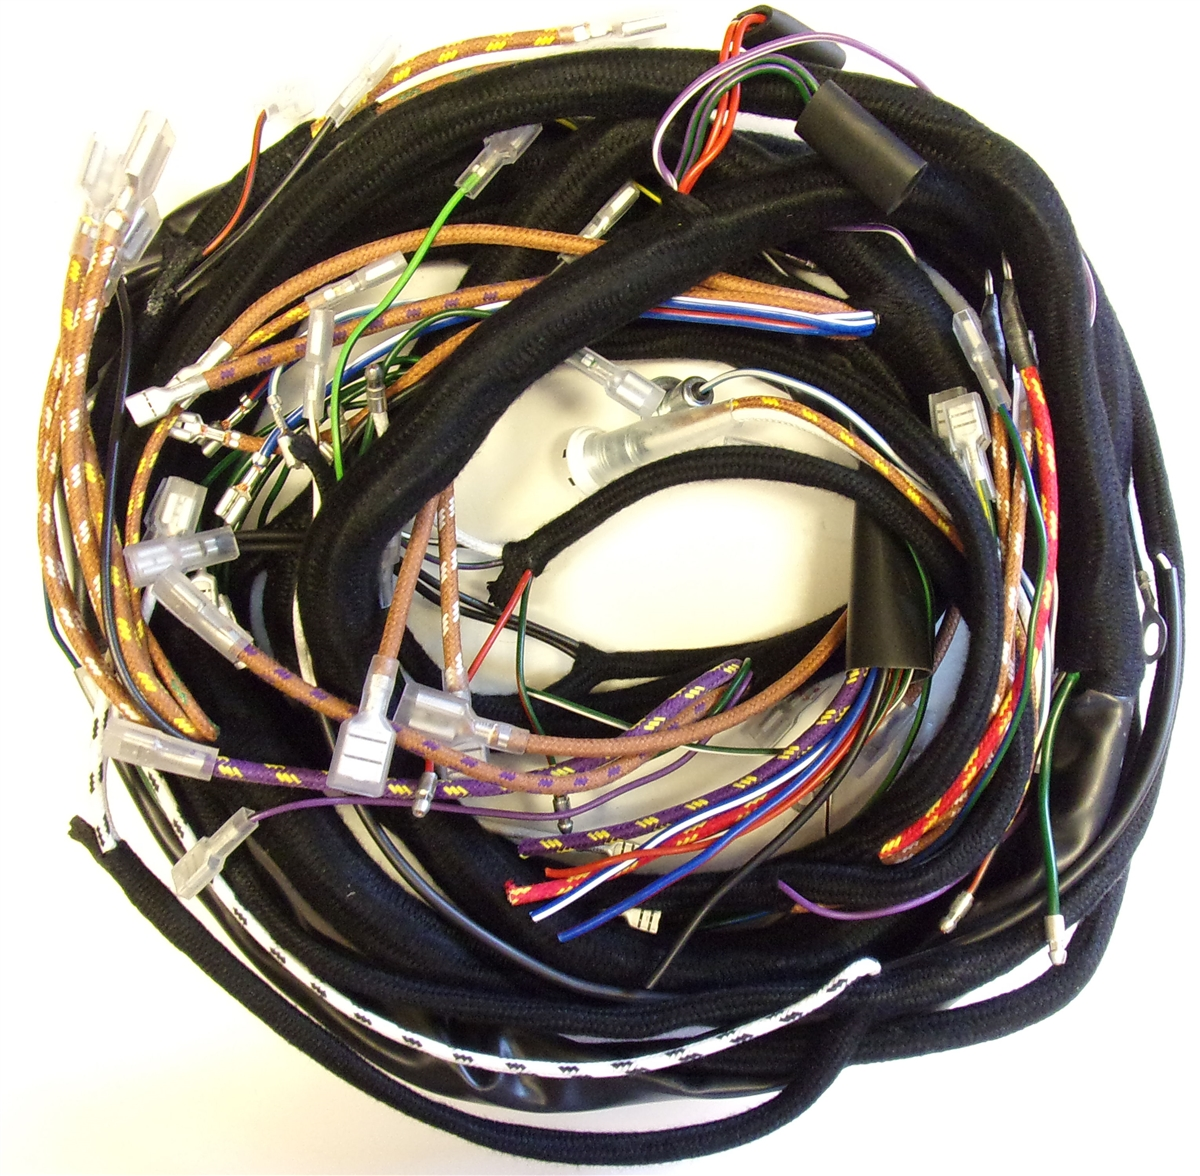 Main Wiring Harness for RHD Series 1, 3.8; No Fan Relay (102) on